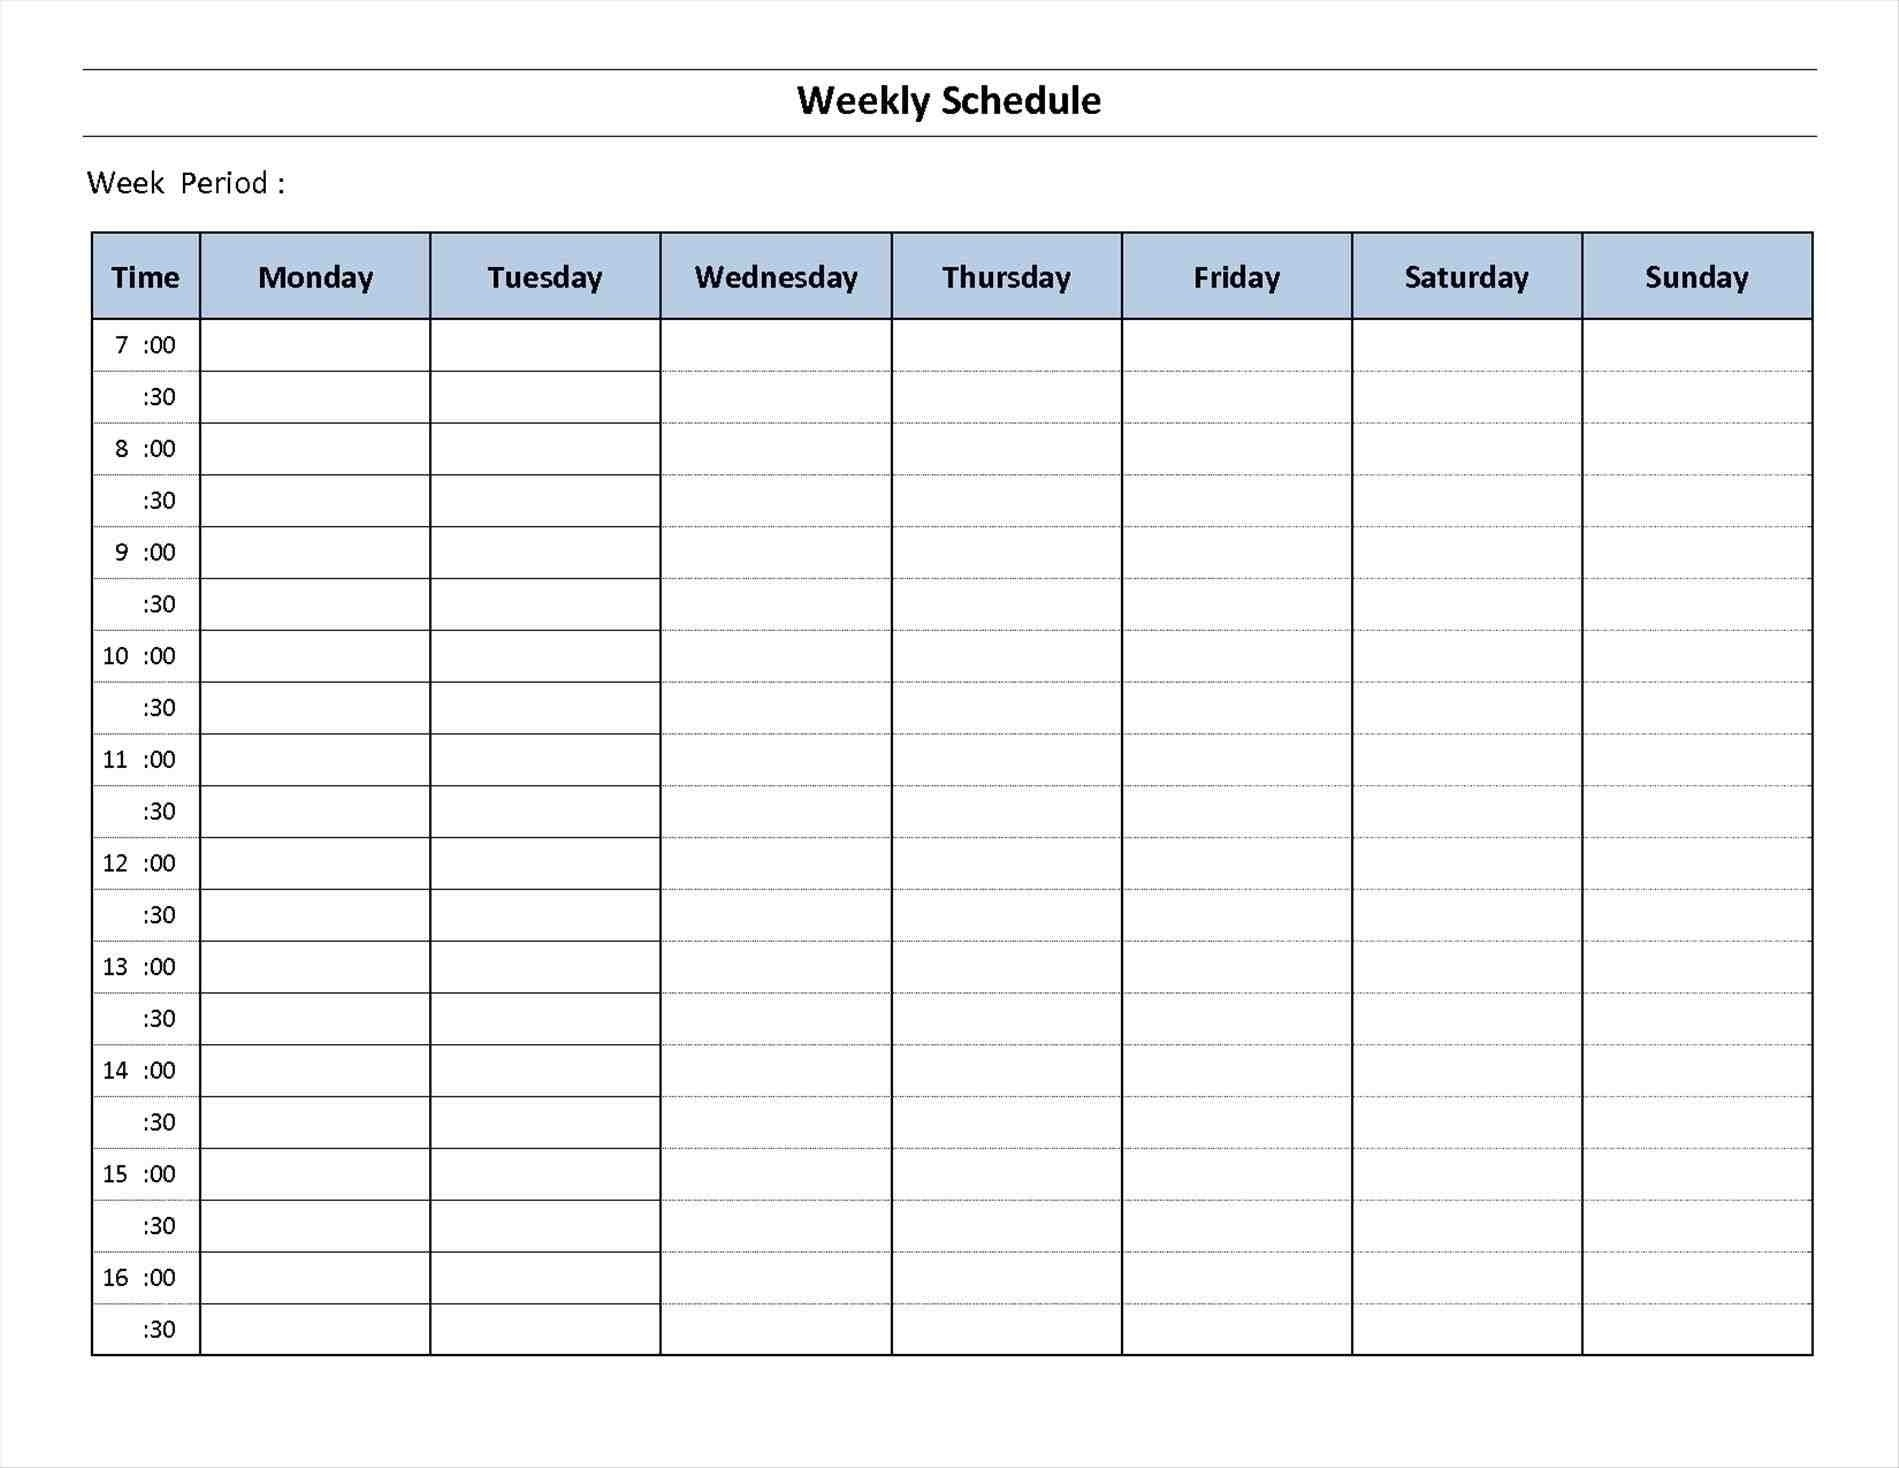 Planner Online Printable | Template Business Psd, Excel pertaining to Free Online Weekly Calendar